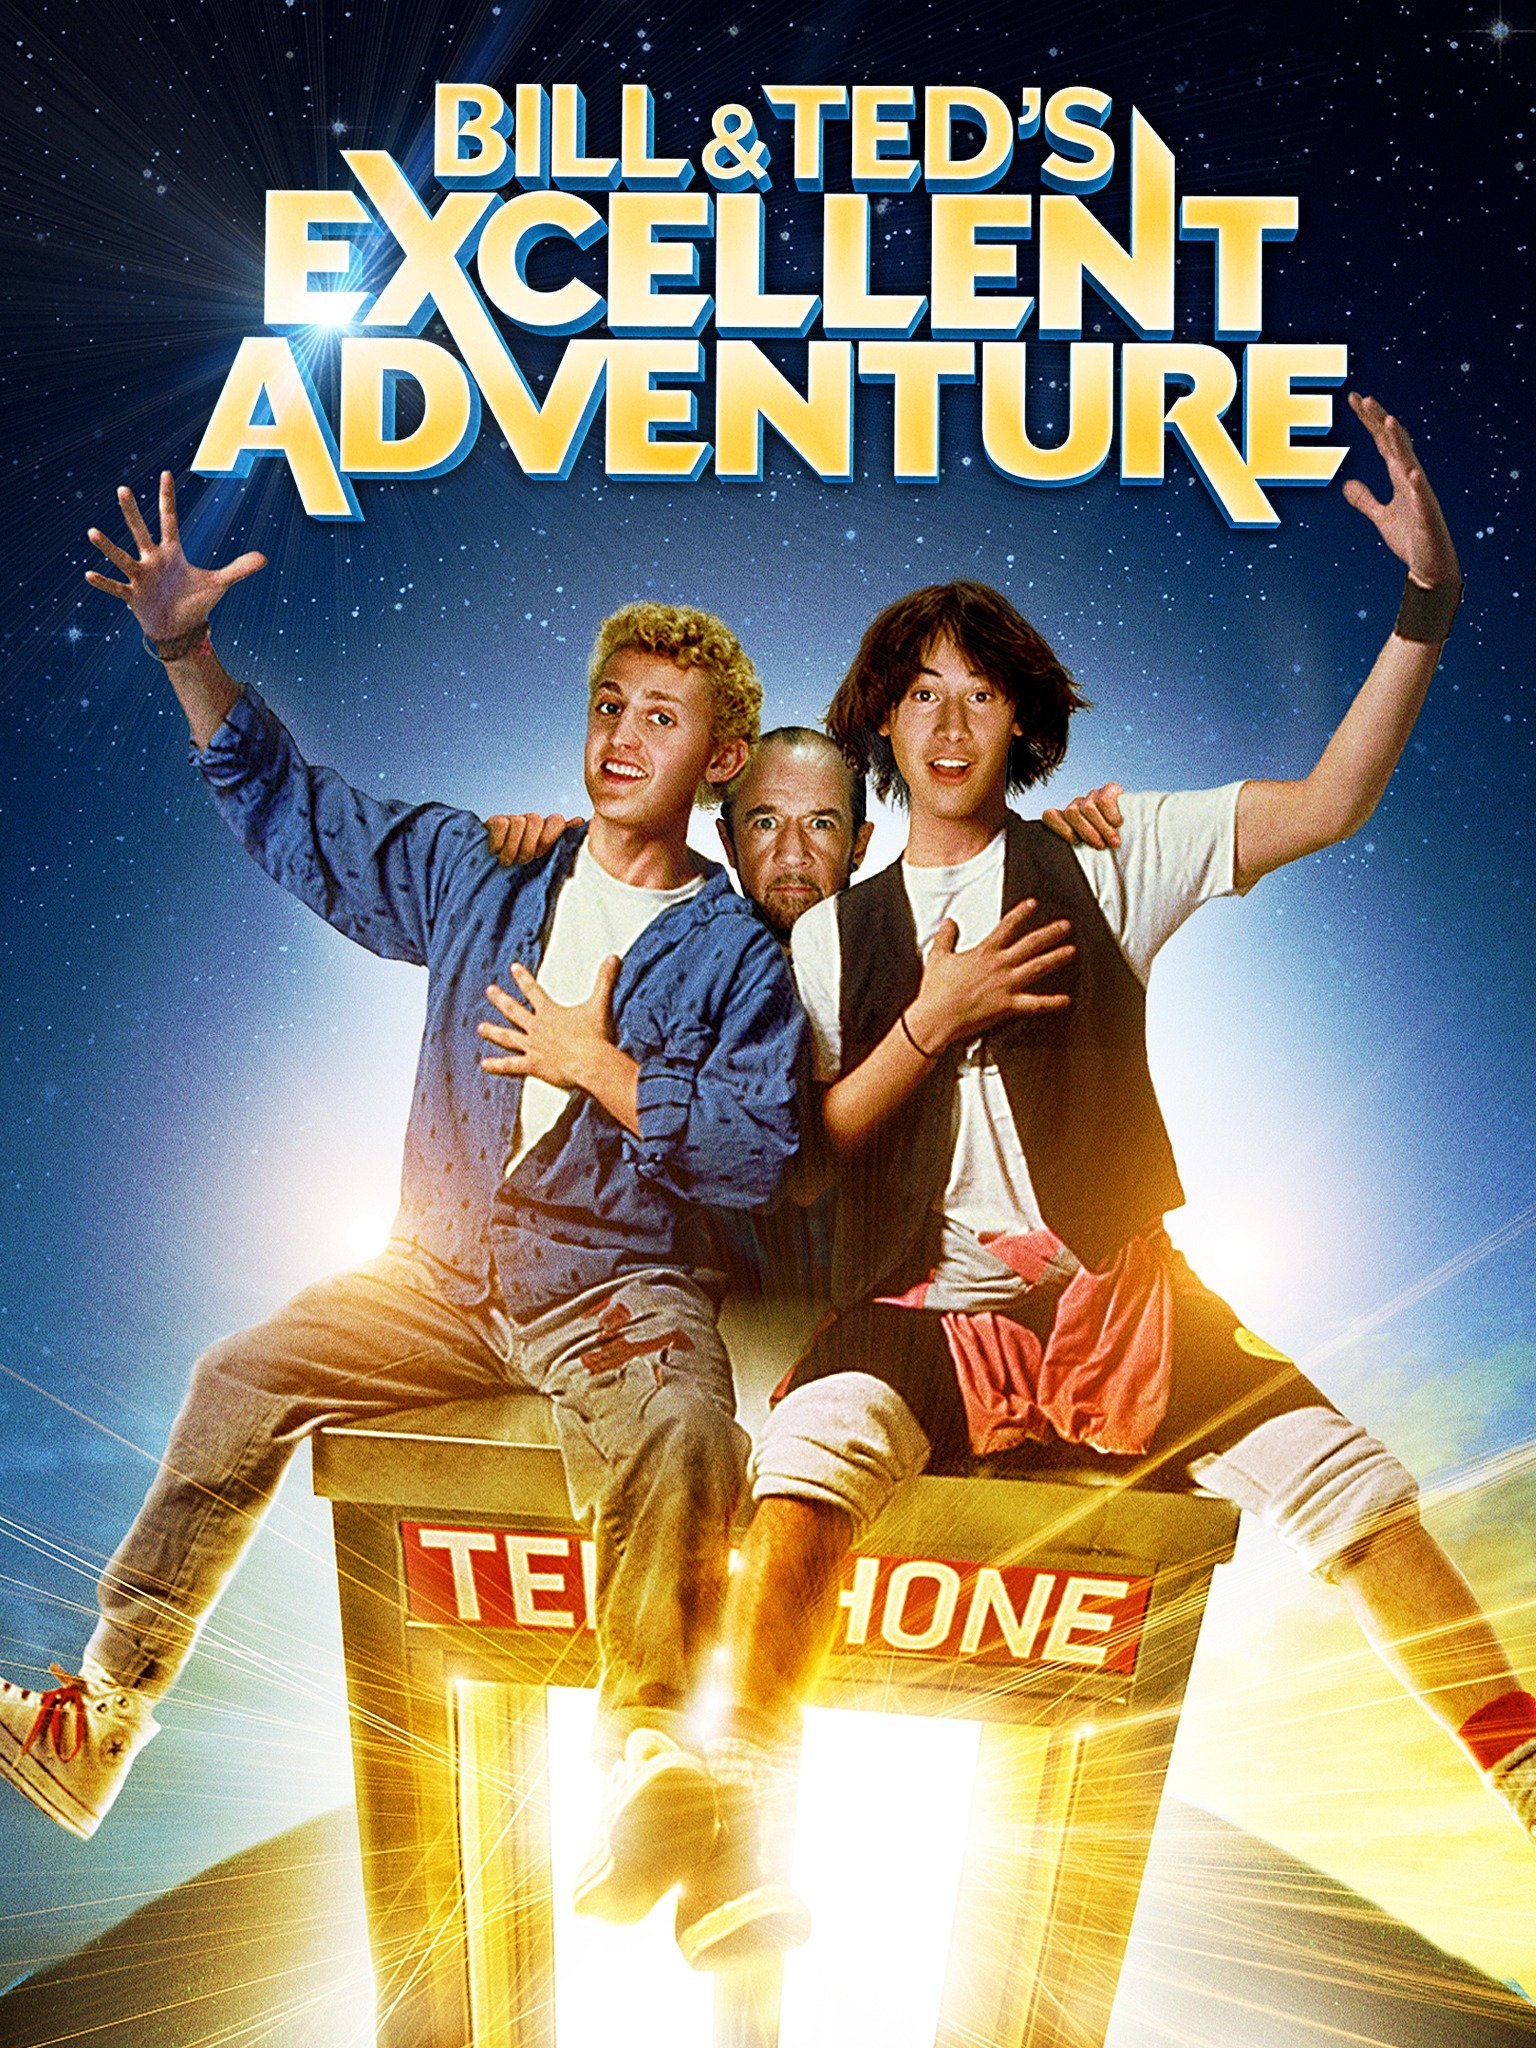 Bill Ted S Excellent Adventure 1989 Rotten Tomatoes